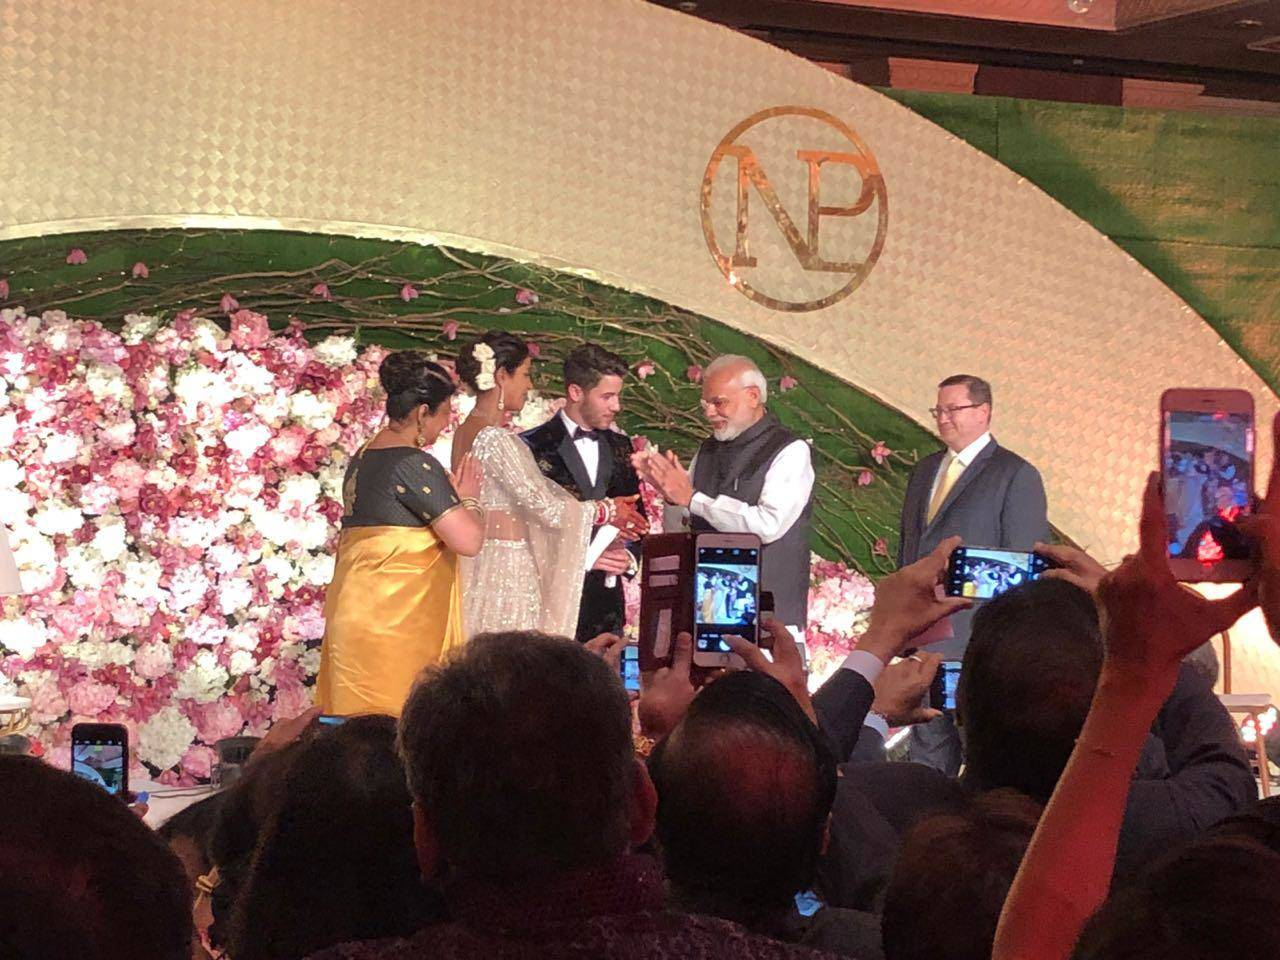 Priyanka Chopra and Nick Jonas wedding reception pictures, photos, images, videos